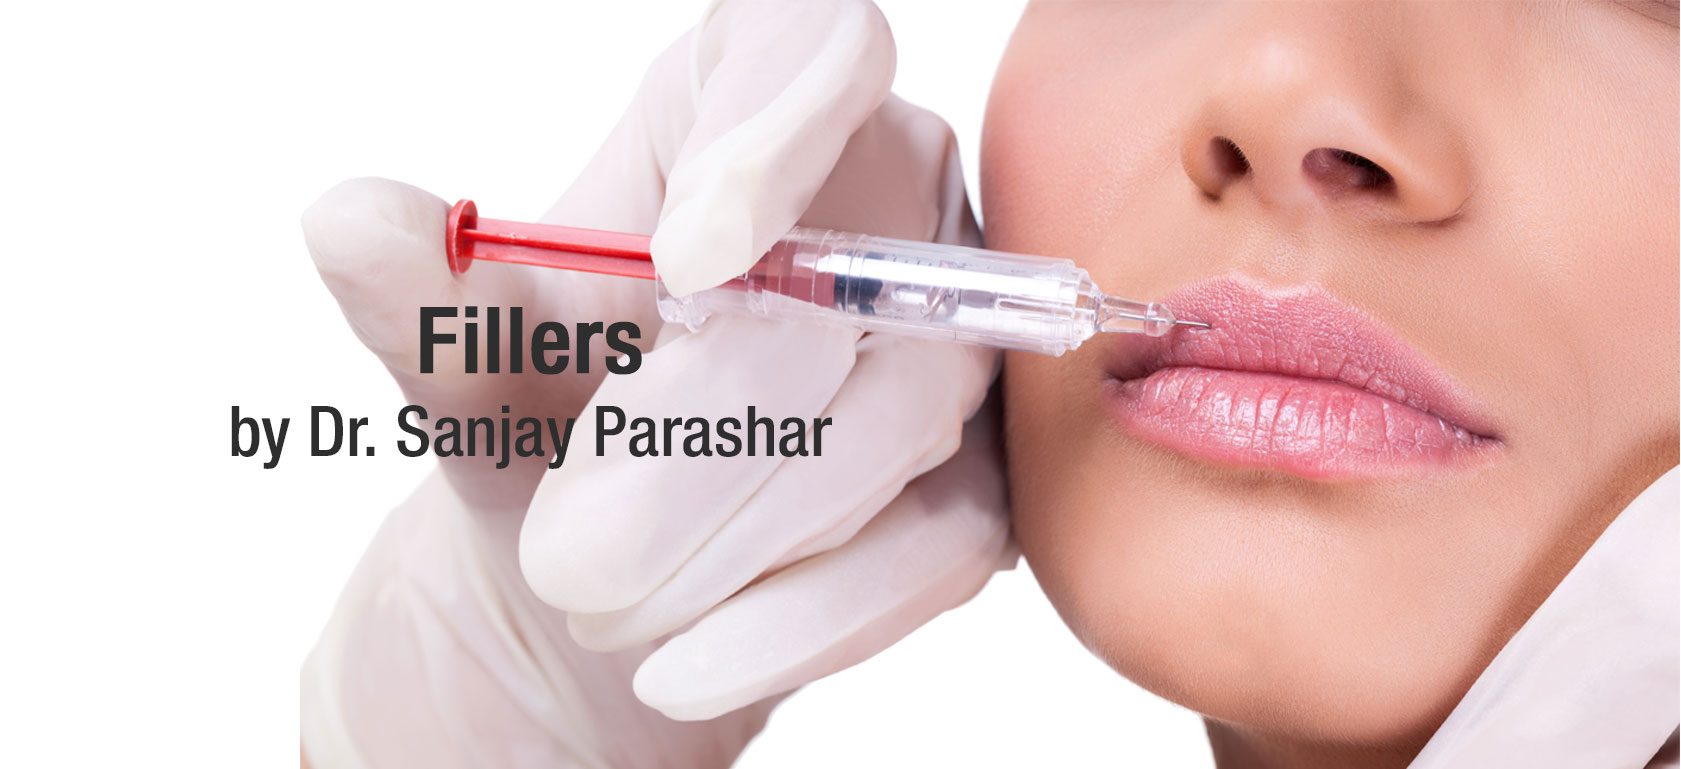 Lip Fillers Dubai - Anti Aging Fillers & Injections - Facial Fillers - By Dr Sanjay Parashar